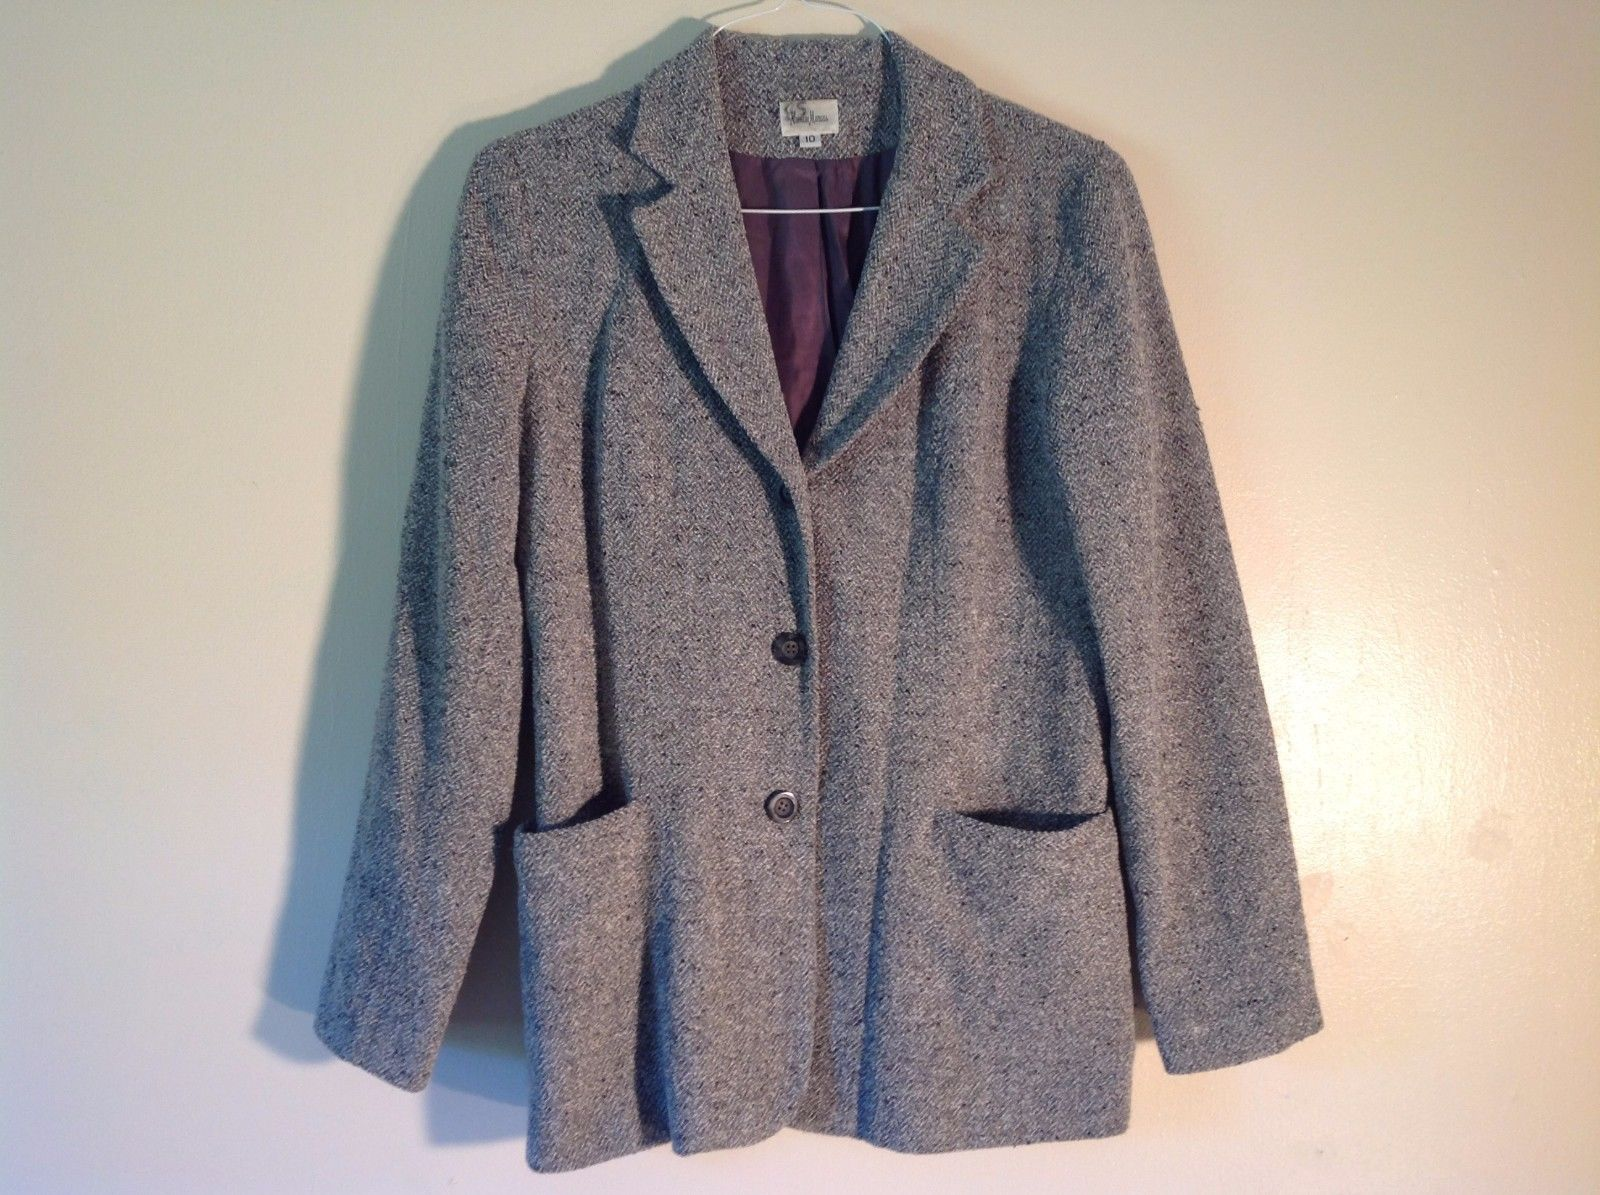 Good Condition Neiman Marcus Size 10 Gray Vintage Outerwear Jacket Chevron